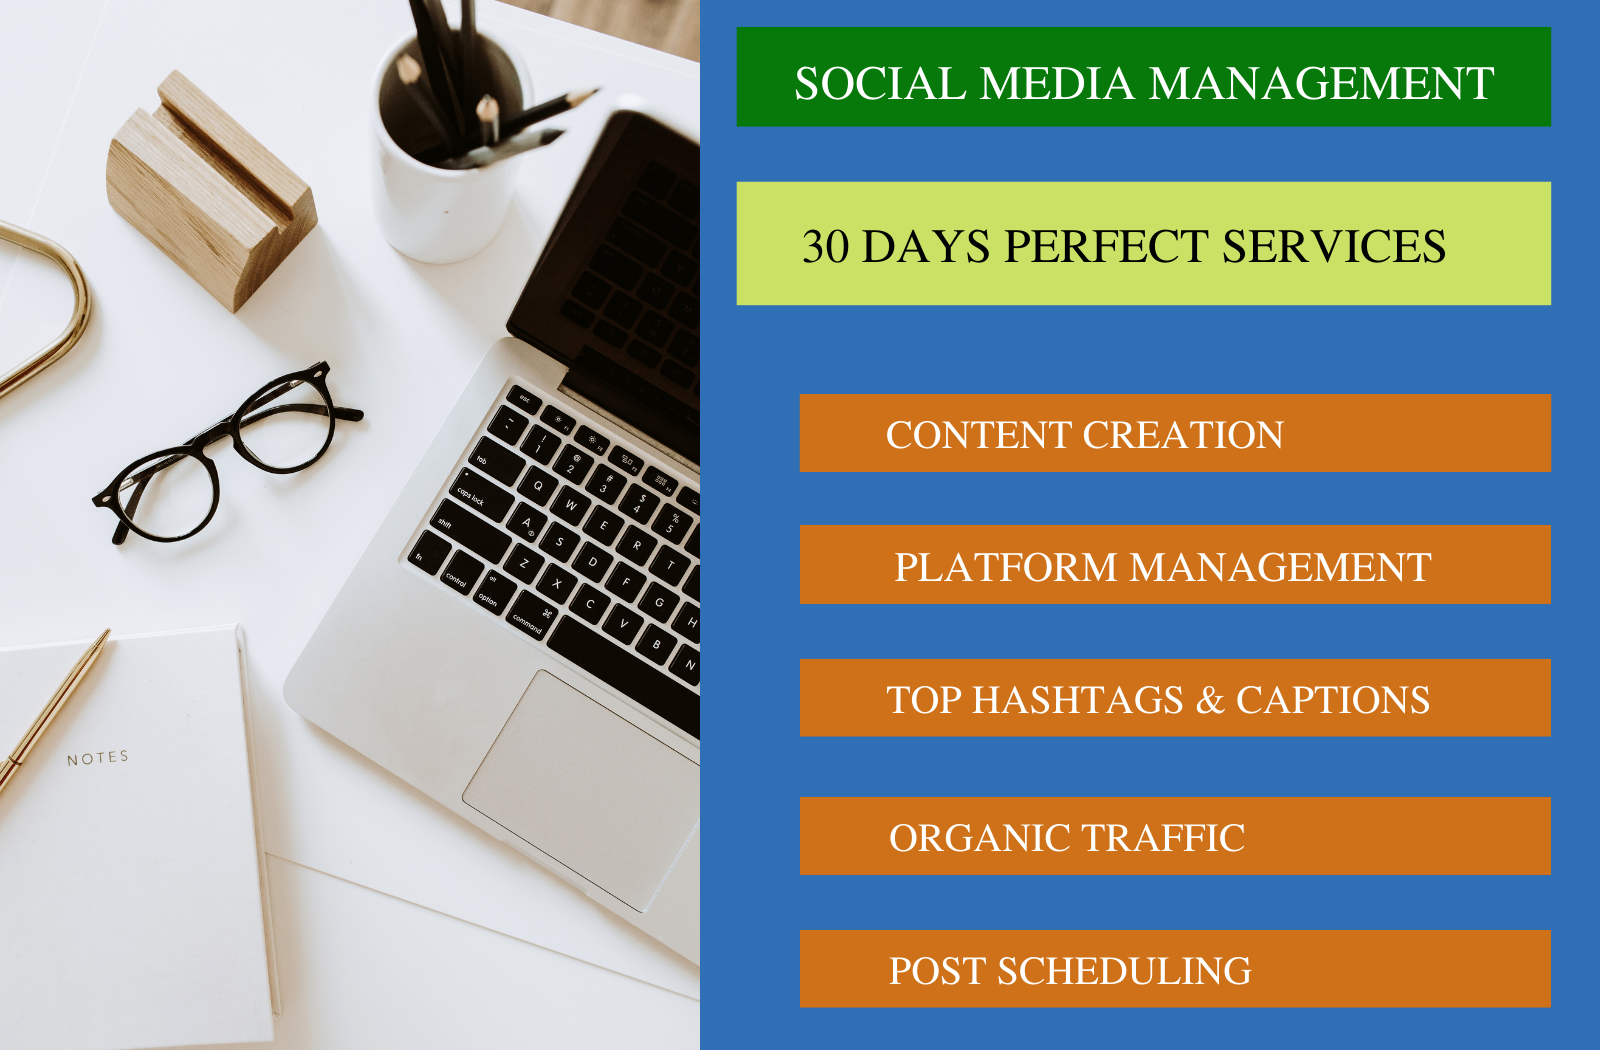 I will be your monthly basis social media manager and content creator